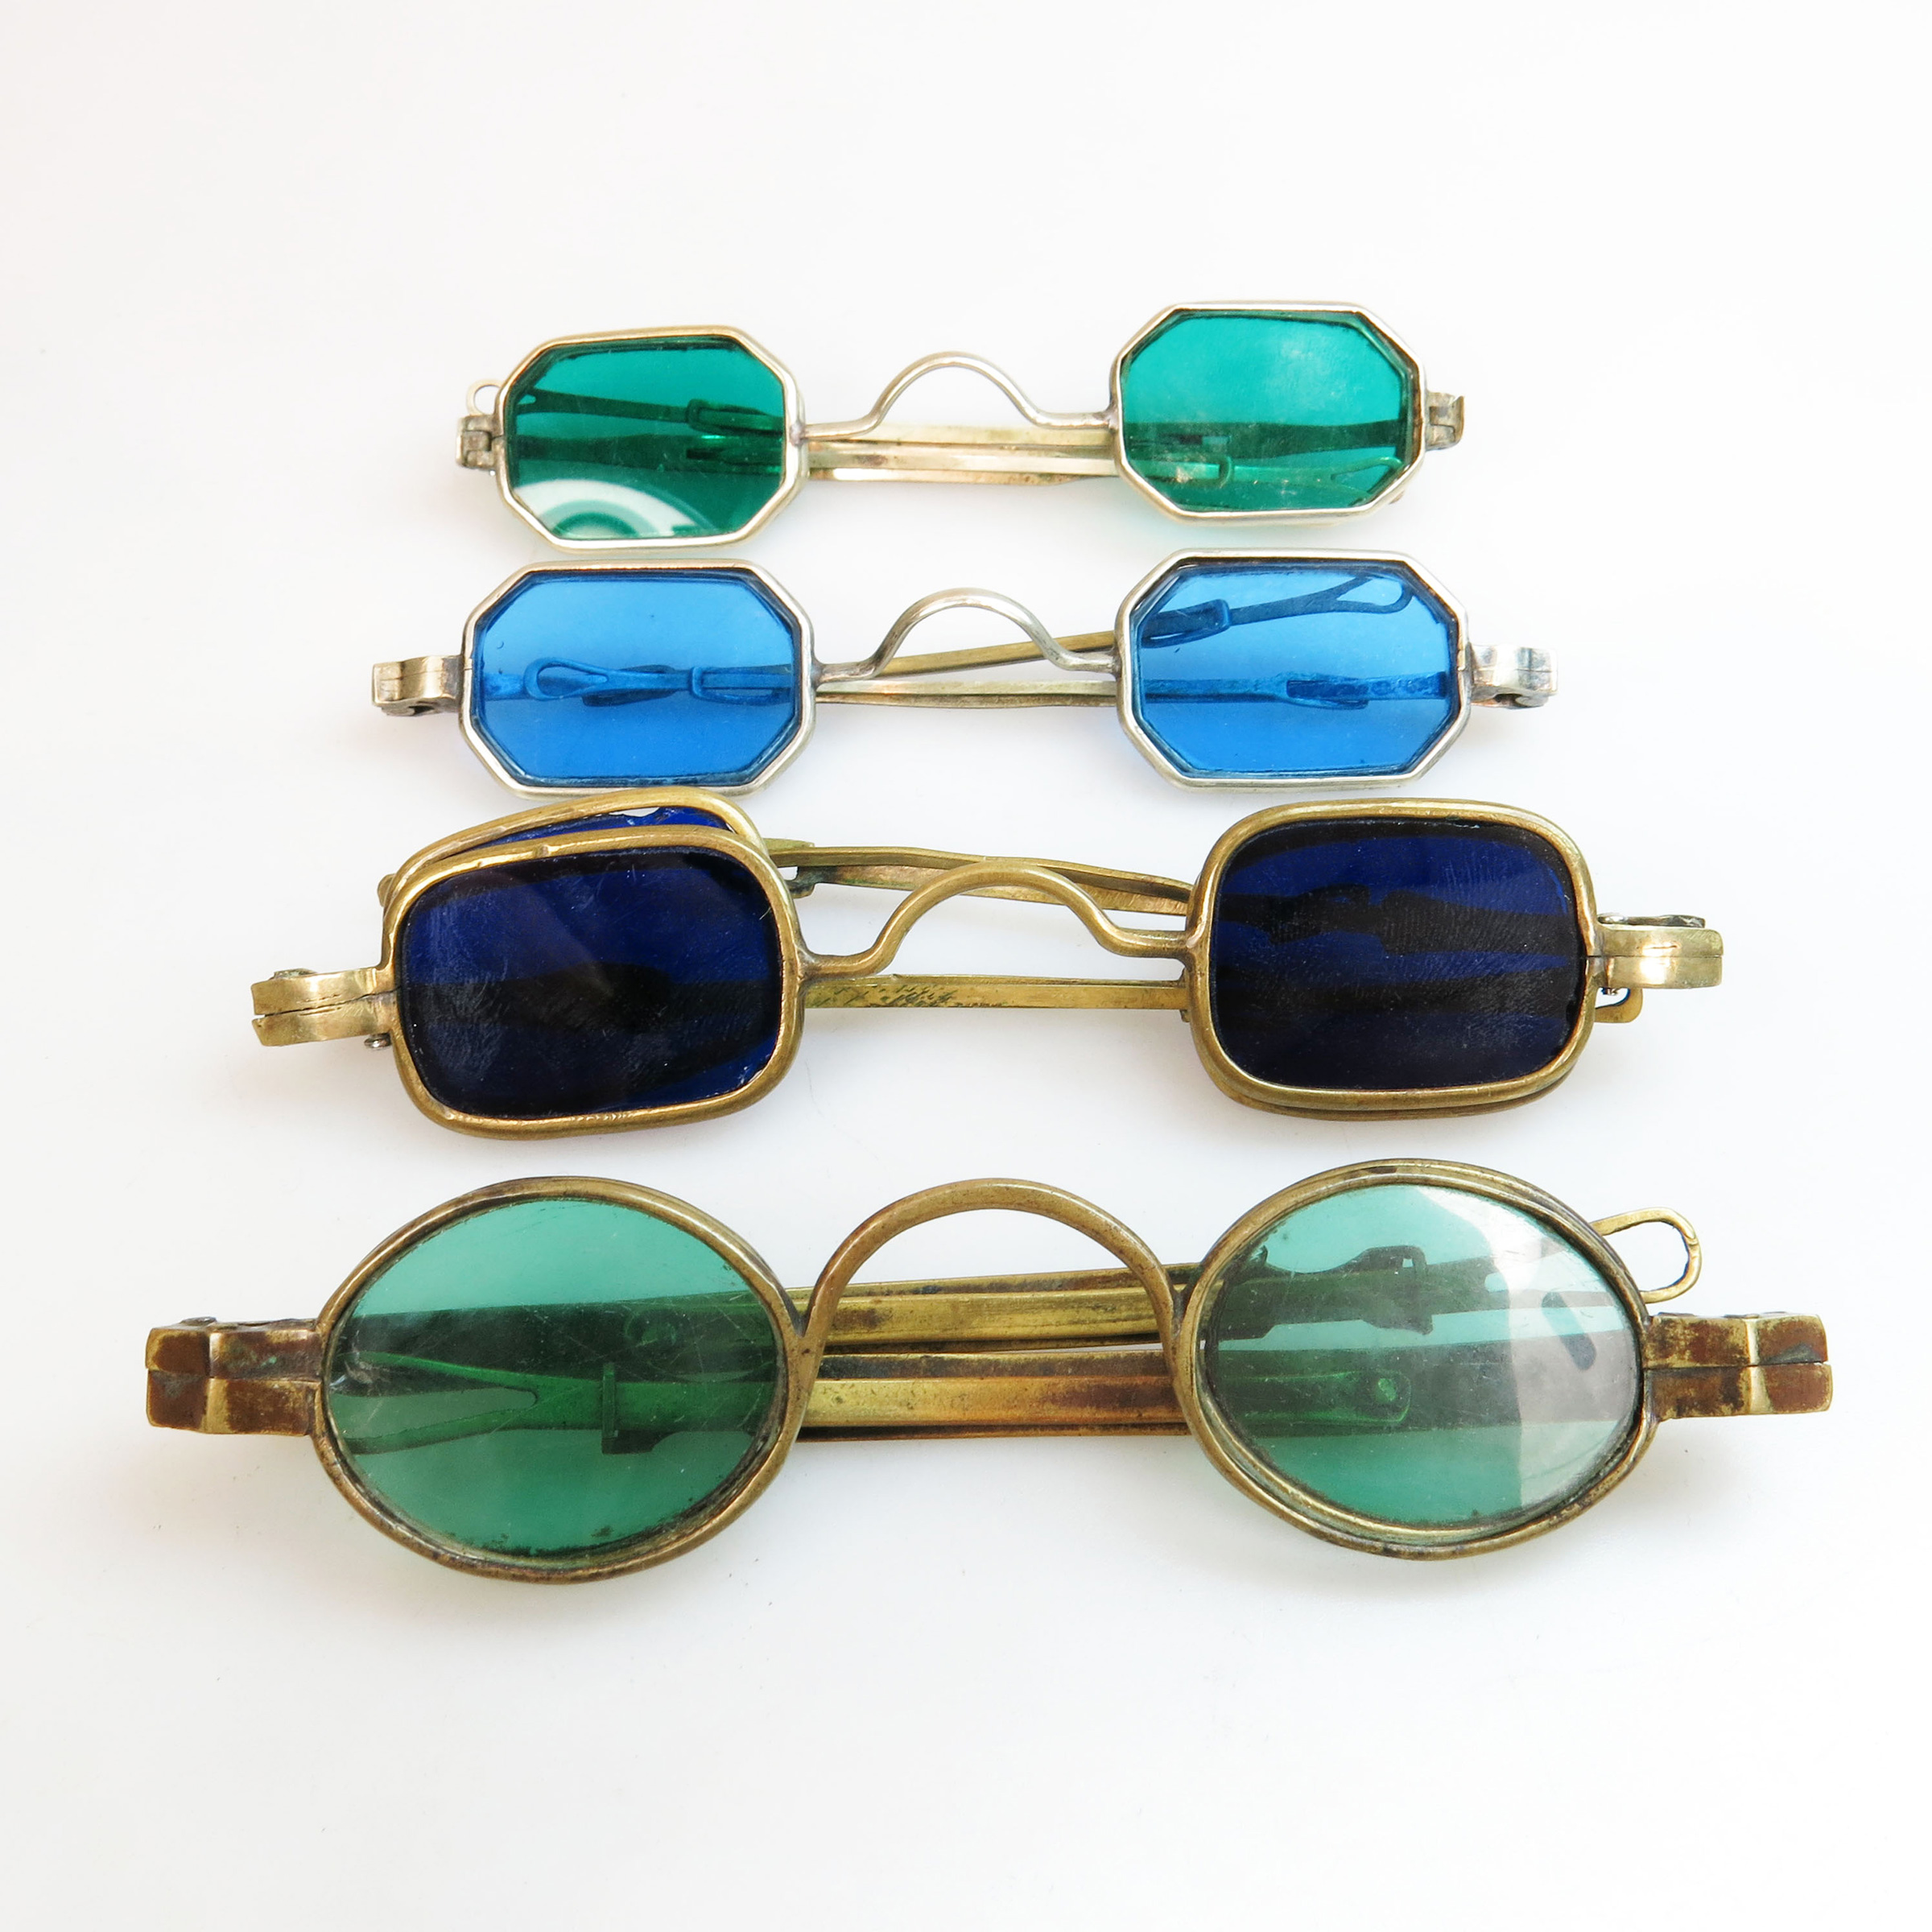 4 Pairs Of 19th Century Brass 4 Lens Spectacles